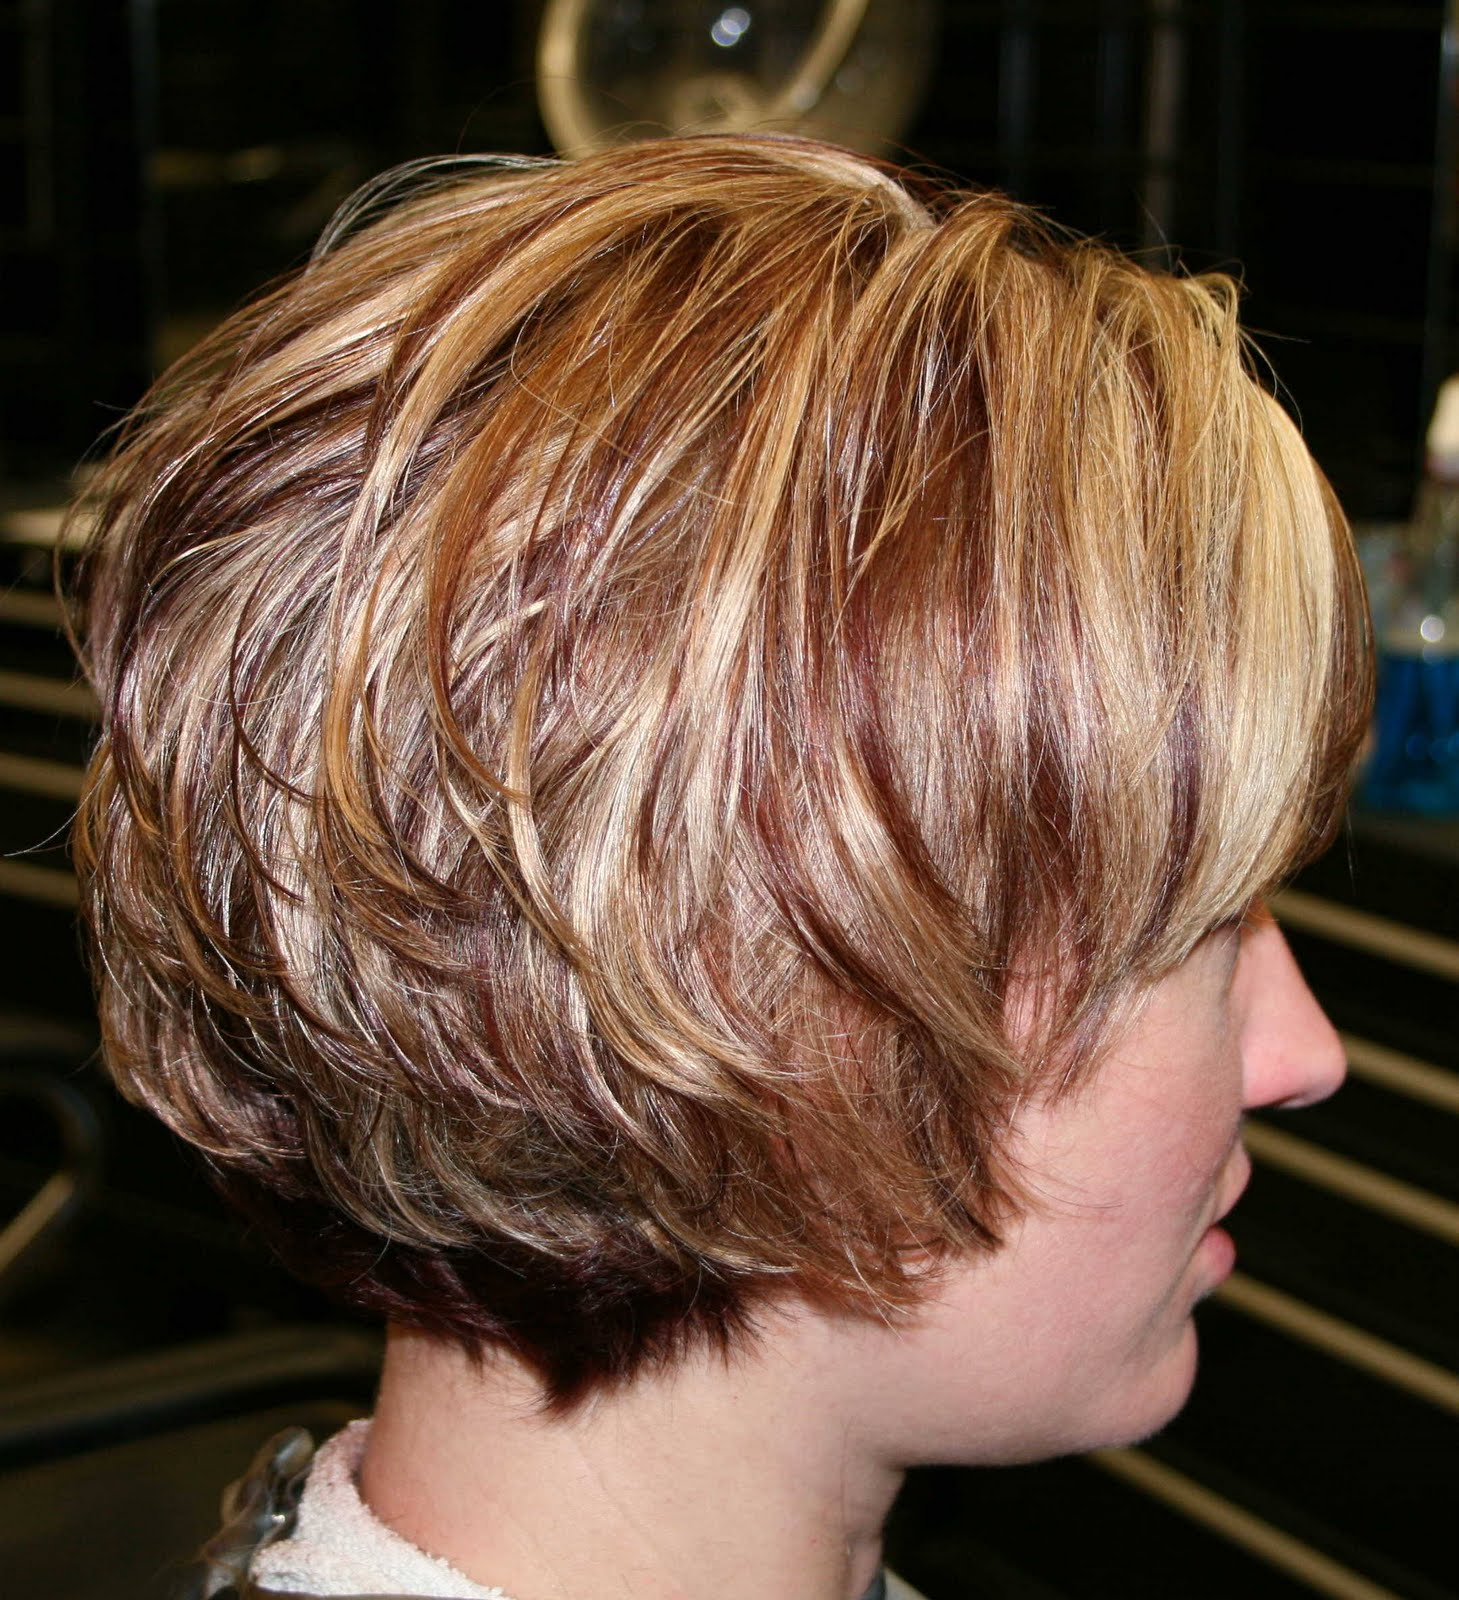 Outstanding Short Bob Hairstyles Bob Hair Styles Hairstyle Inspiration Daily Dogsangcom